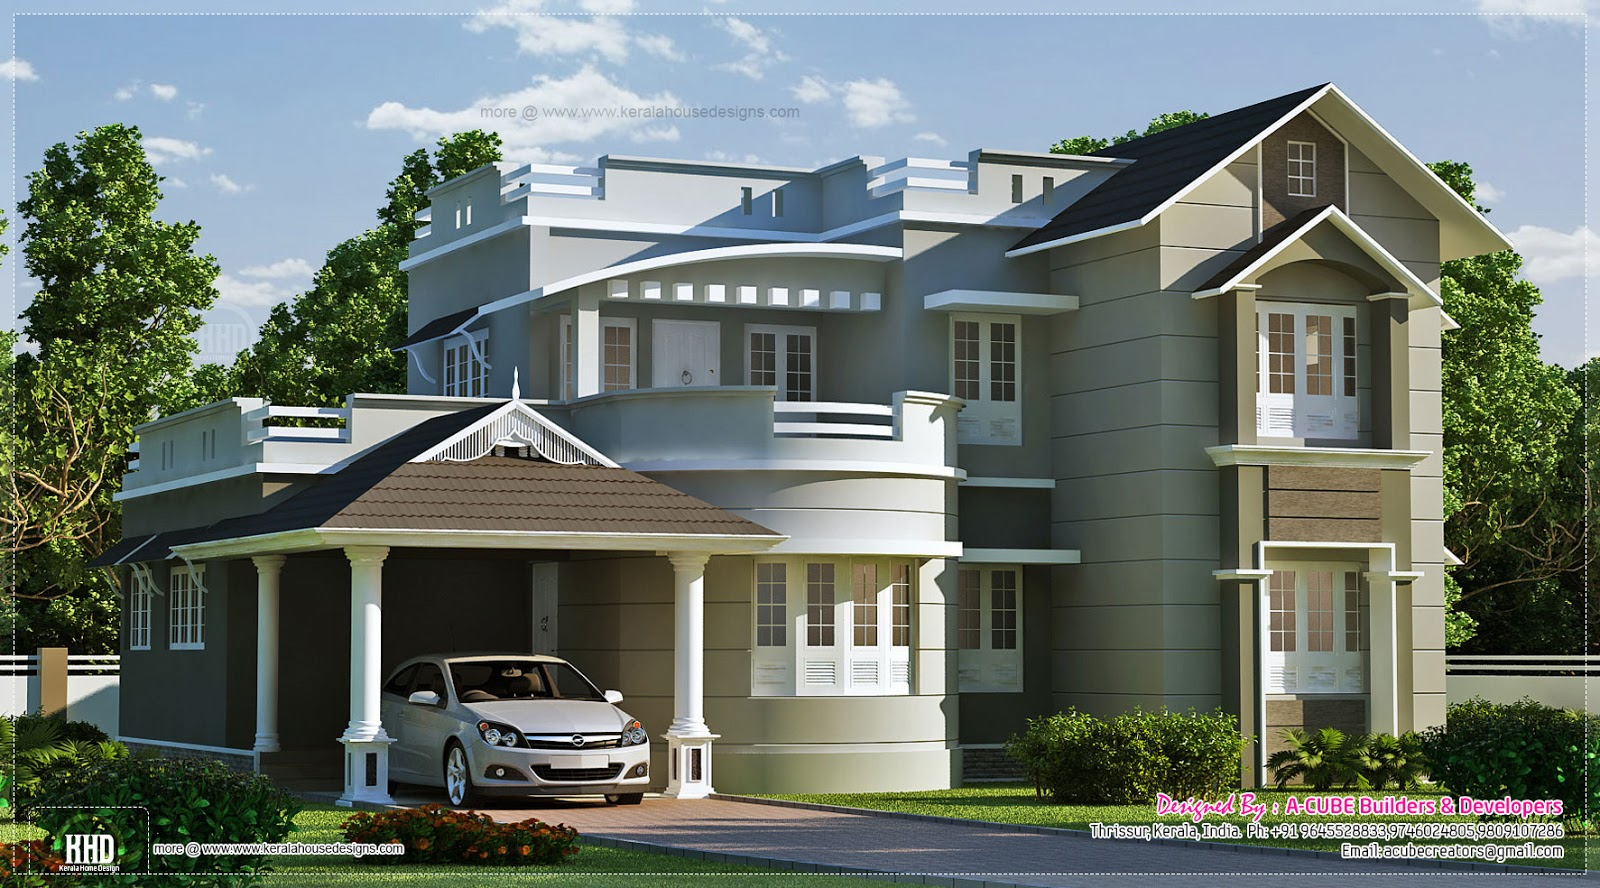 New style home exterior in 1800 kerala home for Kerala home designs com